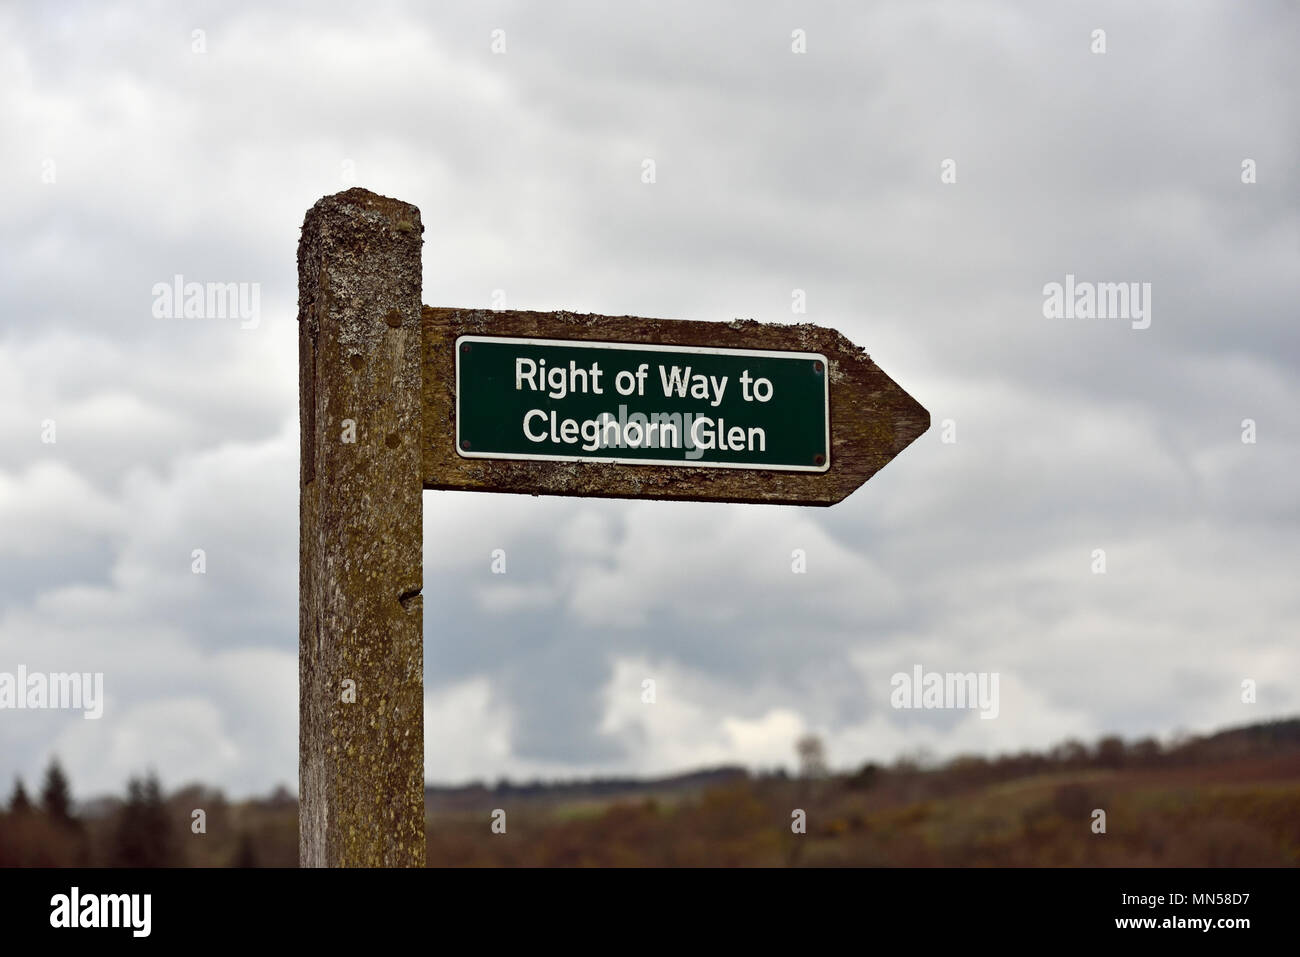 Signpost, Right of Way to Cleghorn Glen, Clyde Valley Woodlands National Nature Reserve, Lanarkshire, Scotland, United Kingdom, Europe. - Stock Image